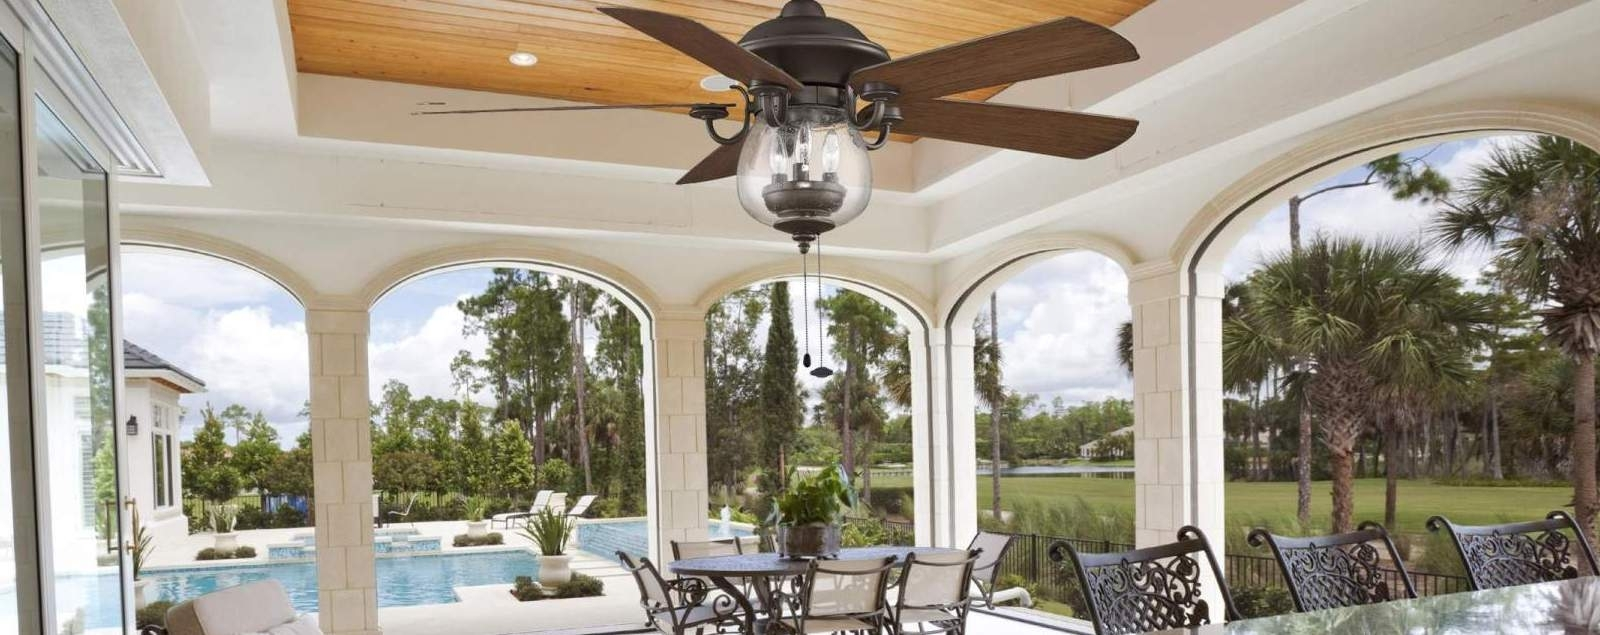 Outdoor Ceiling Fans – Choose Wet Rated Or Damp Rated For Your Space! Inside Wet Rated Outdoor Ceiling Lights (View 13 of 15)